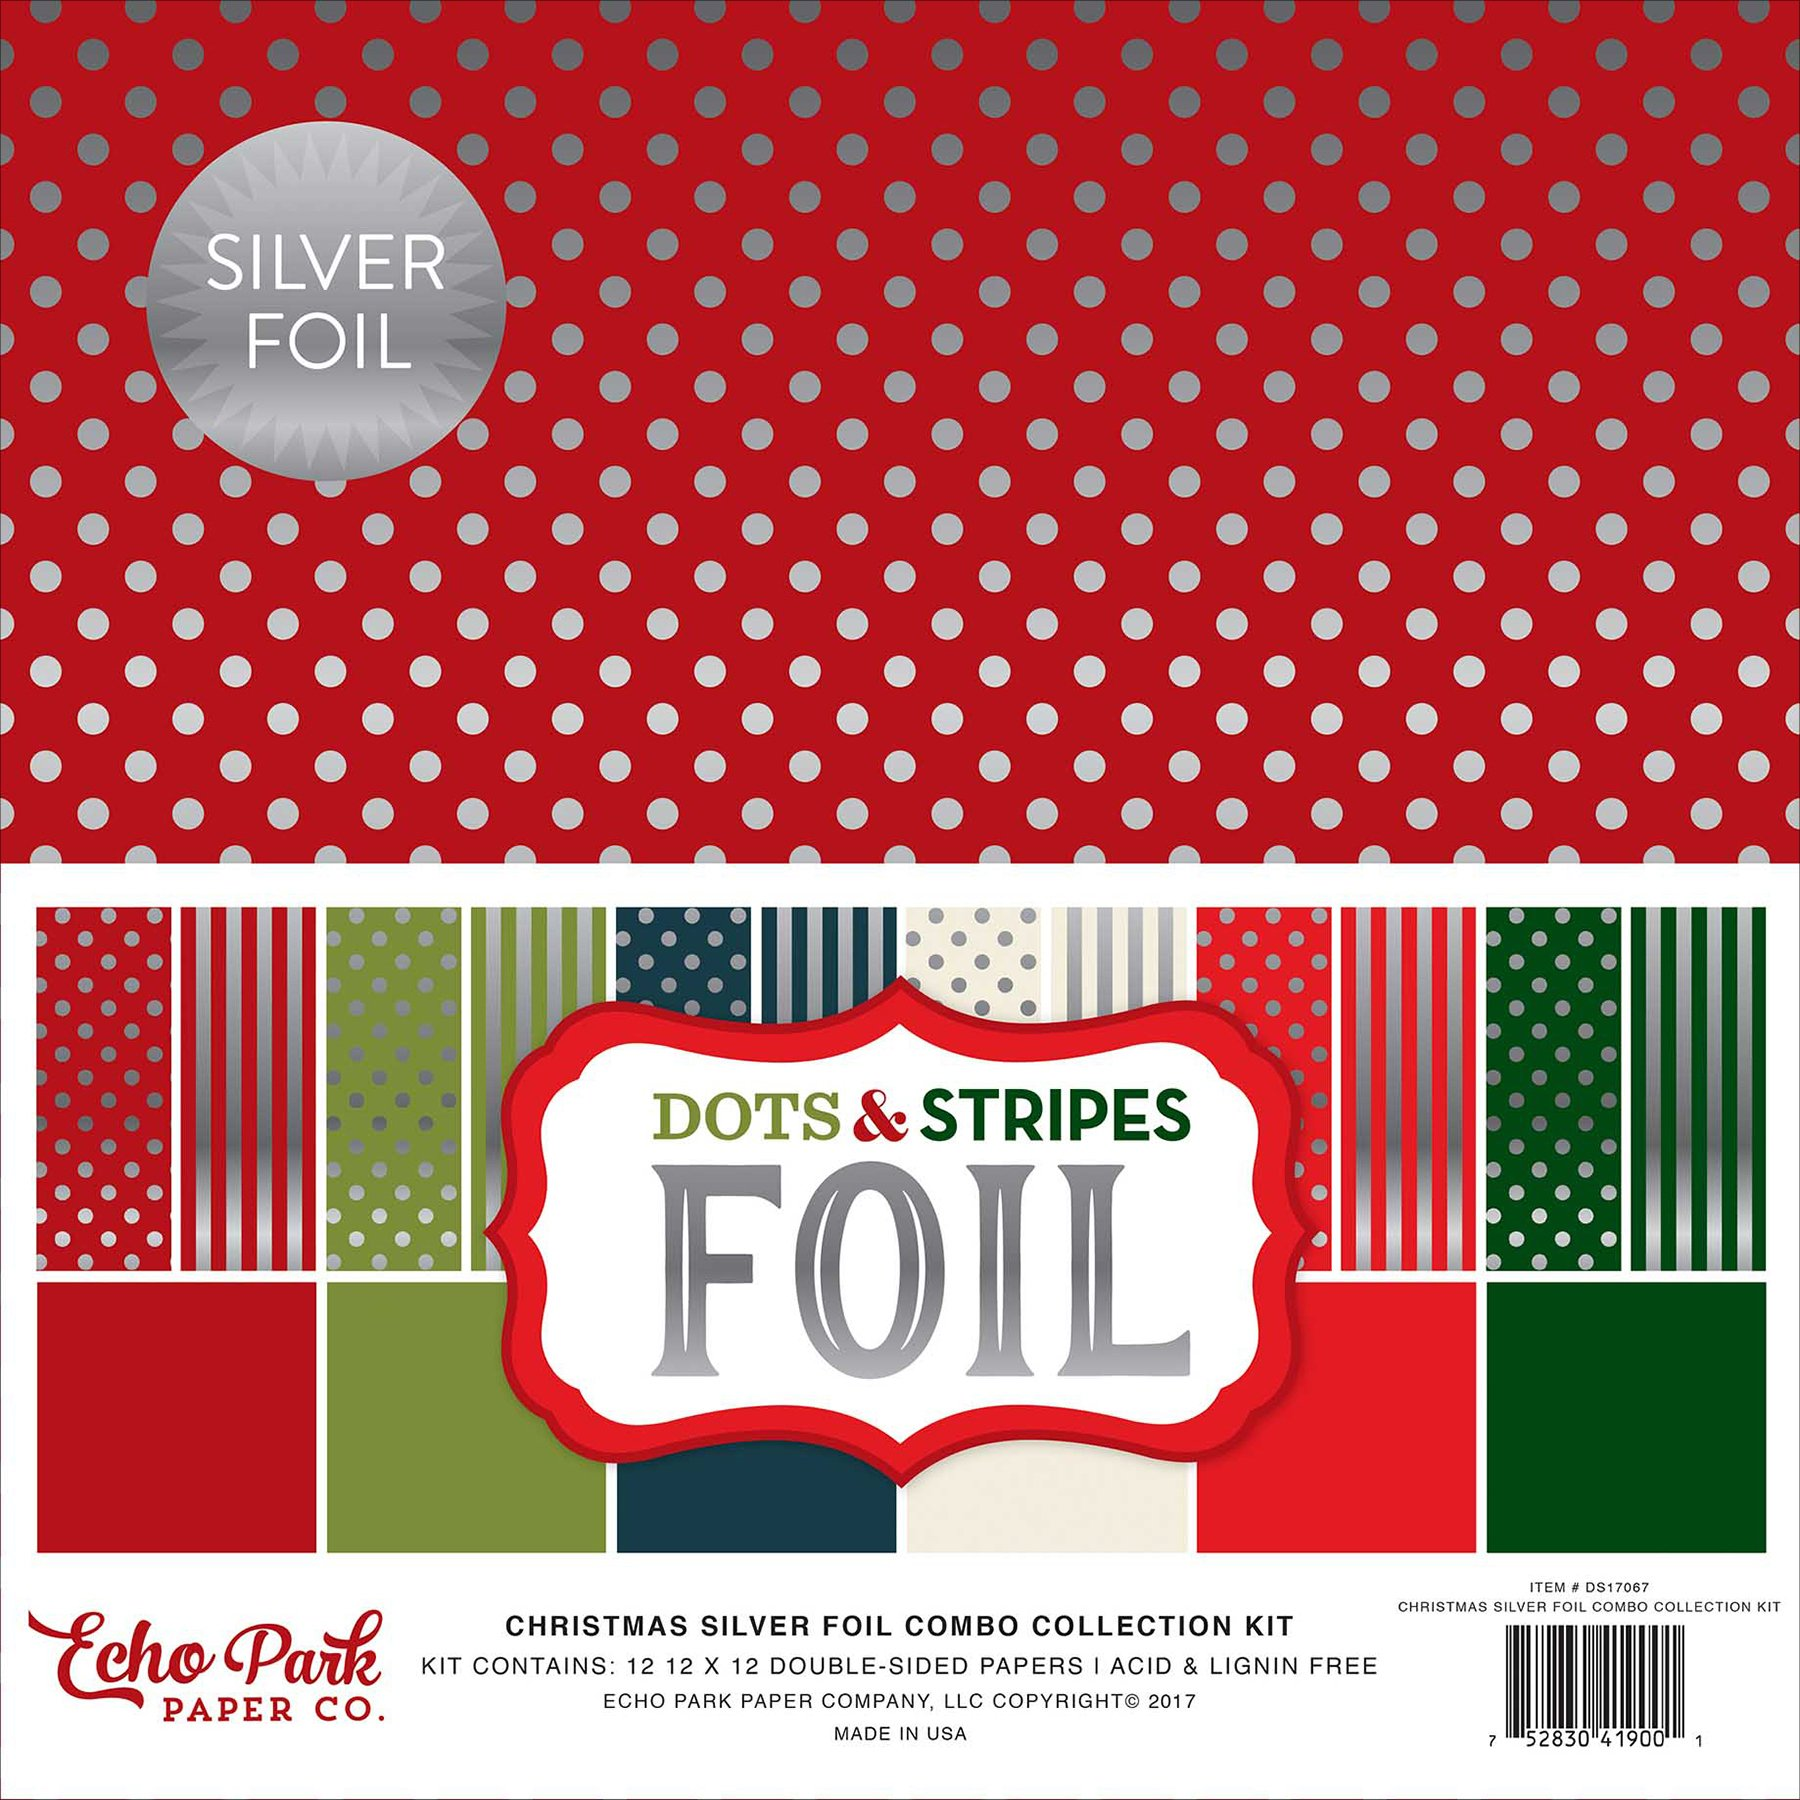 Echo Park Paper Company Silver Foil Combo Collection Kit by Echo Park Paper Company